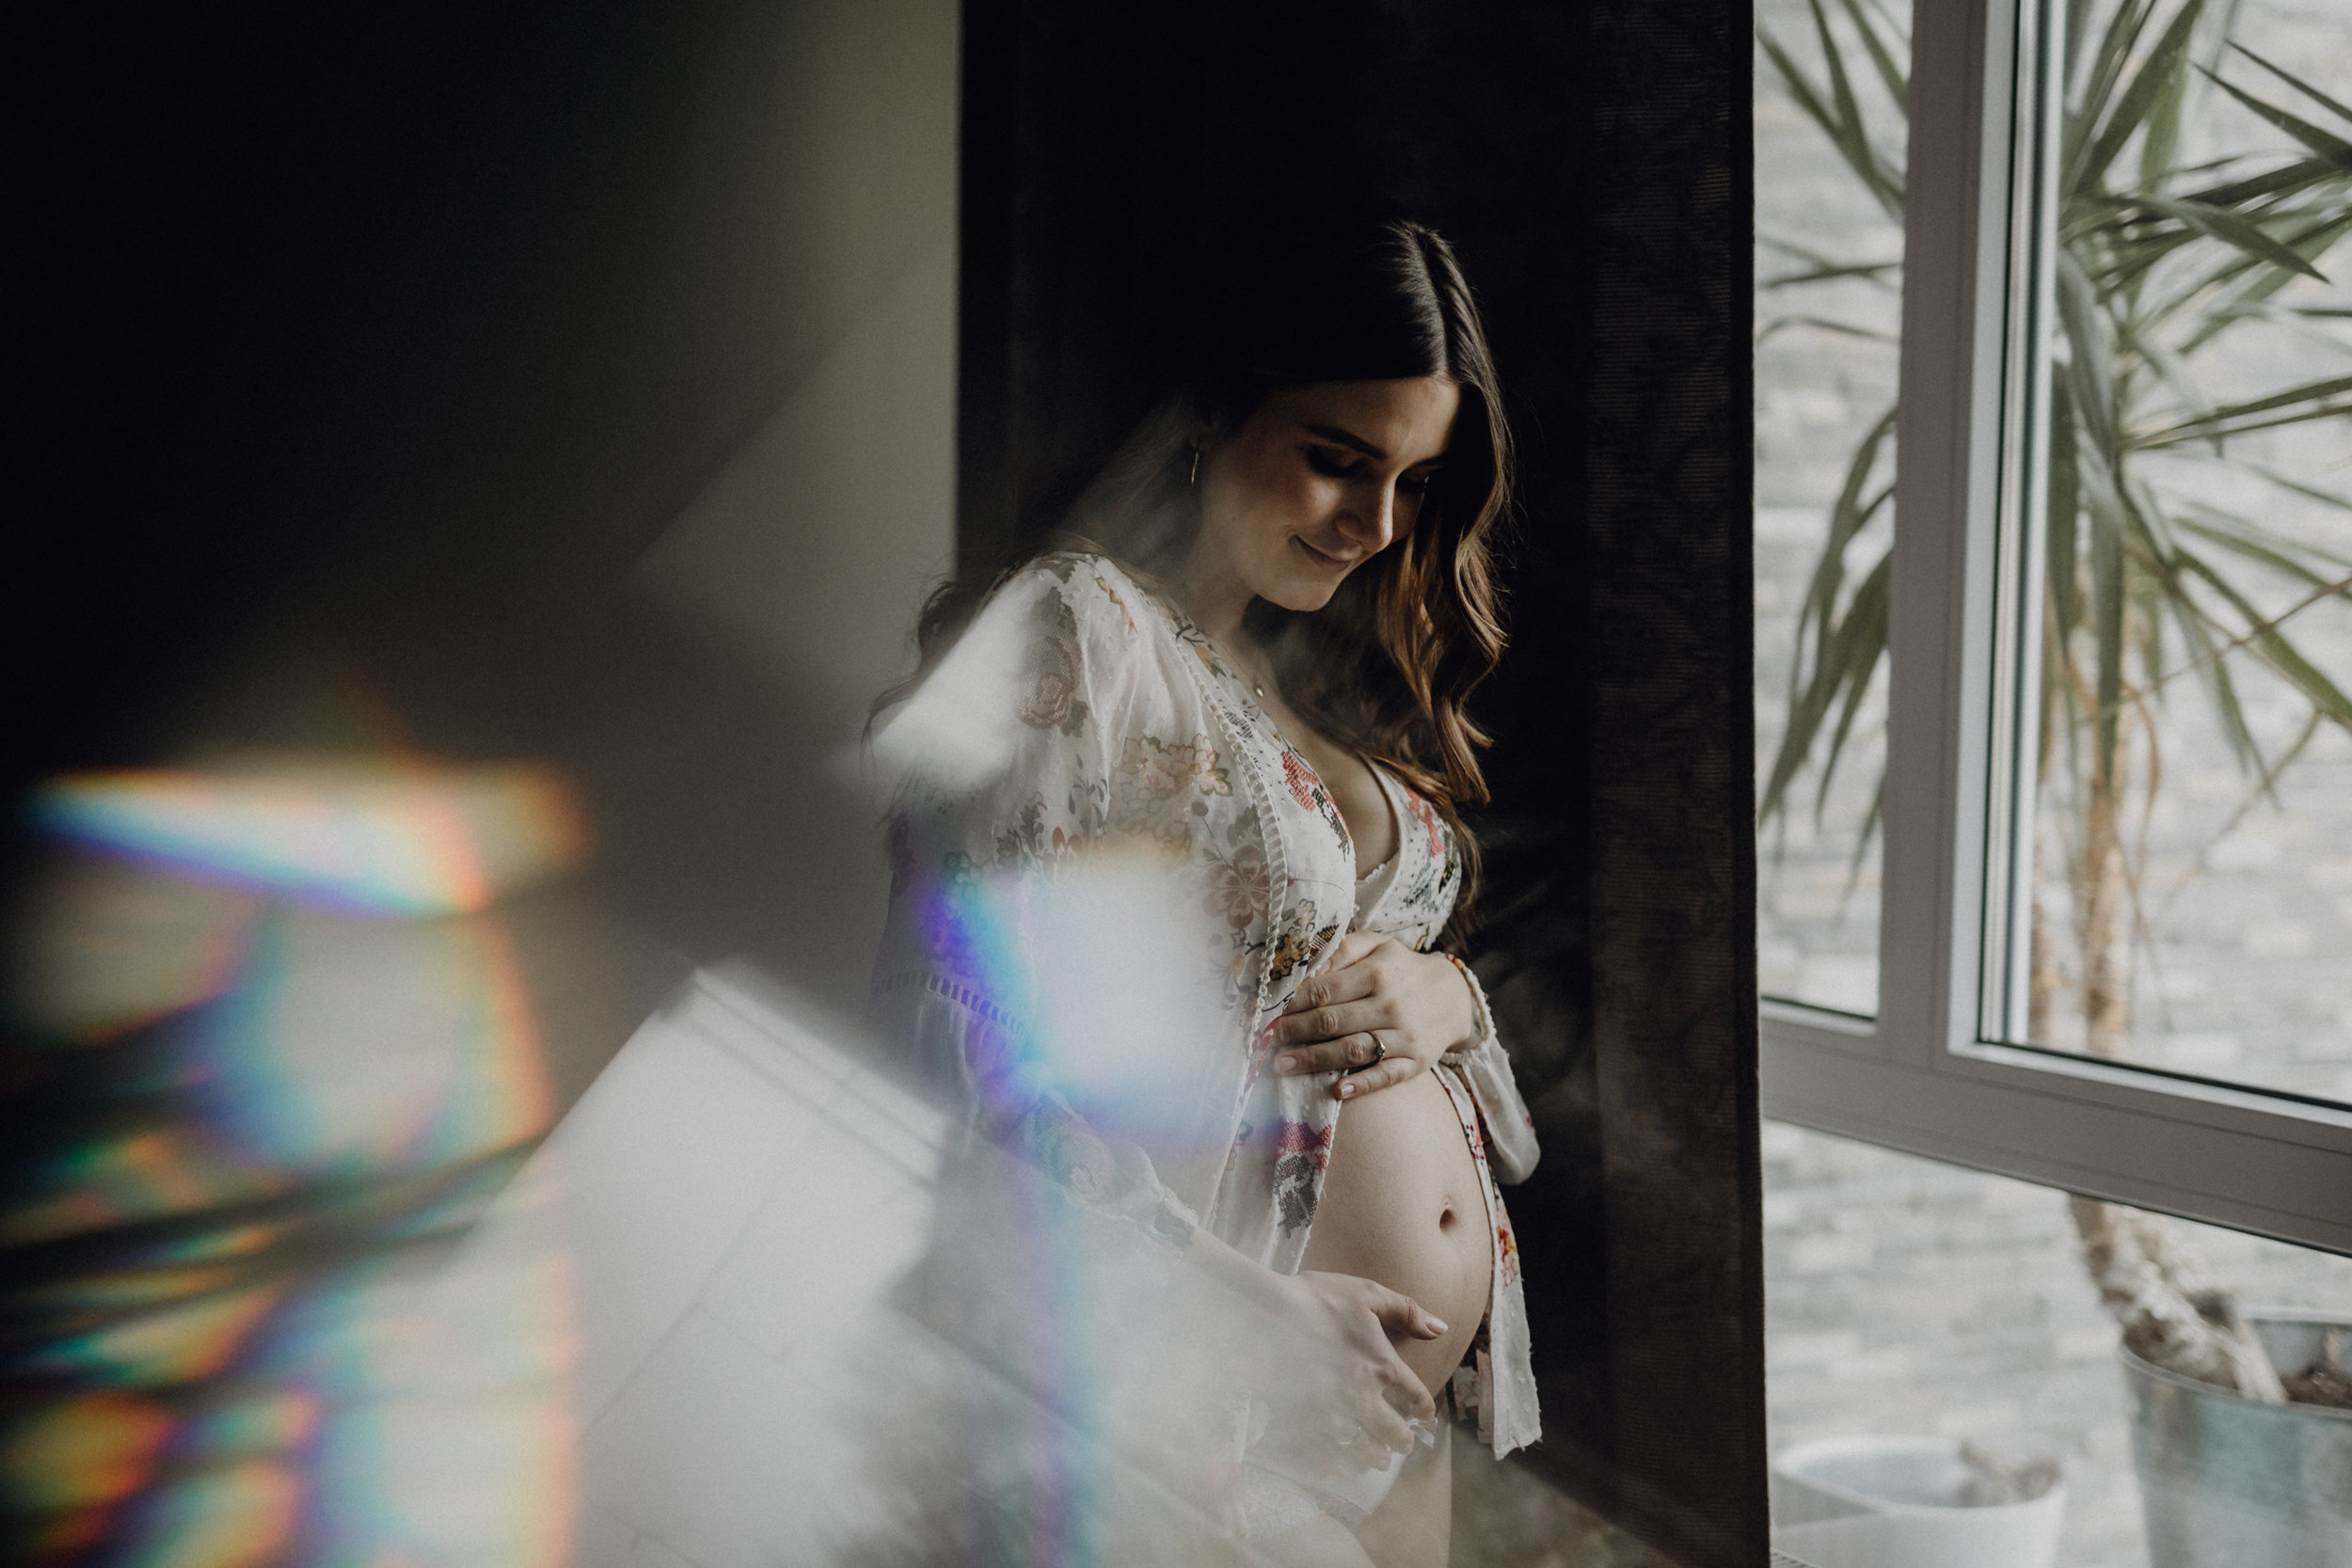 Babybelly_by_OH.ELLA-19.jpg